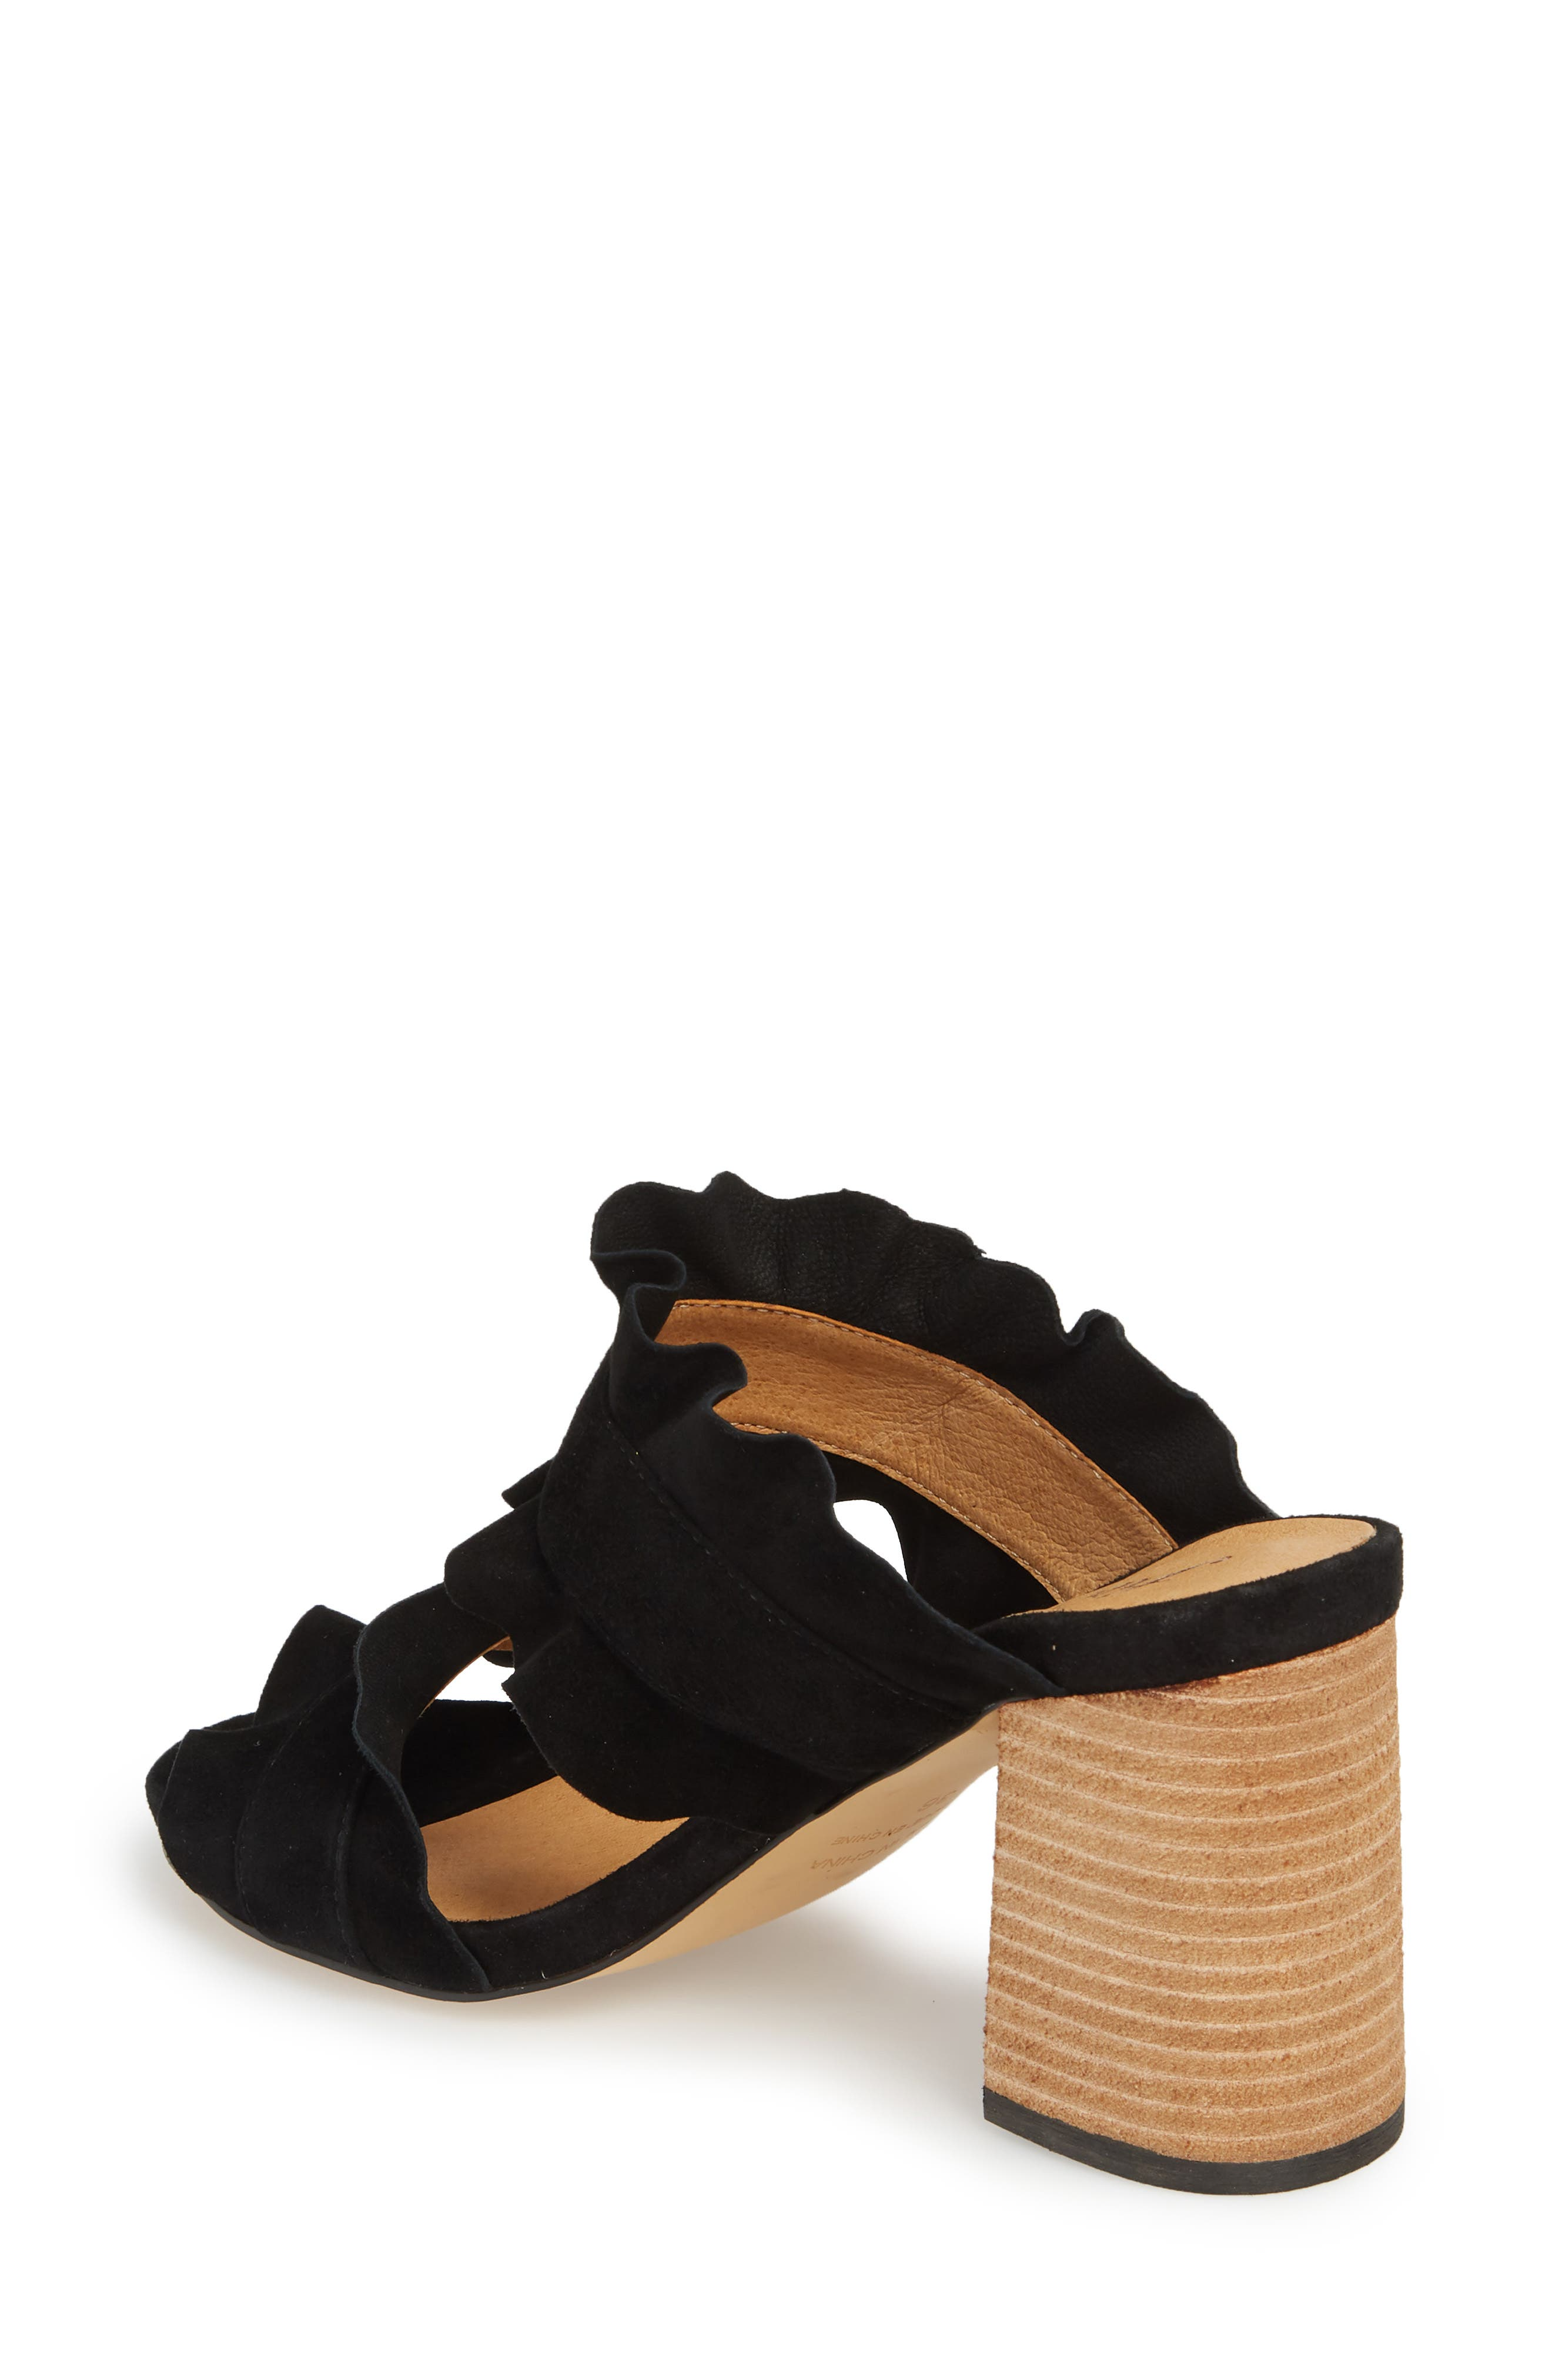 Rosie Ruffle Slide Sandal,                             Alternate thumbnail 2, color,                             BLACK